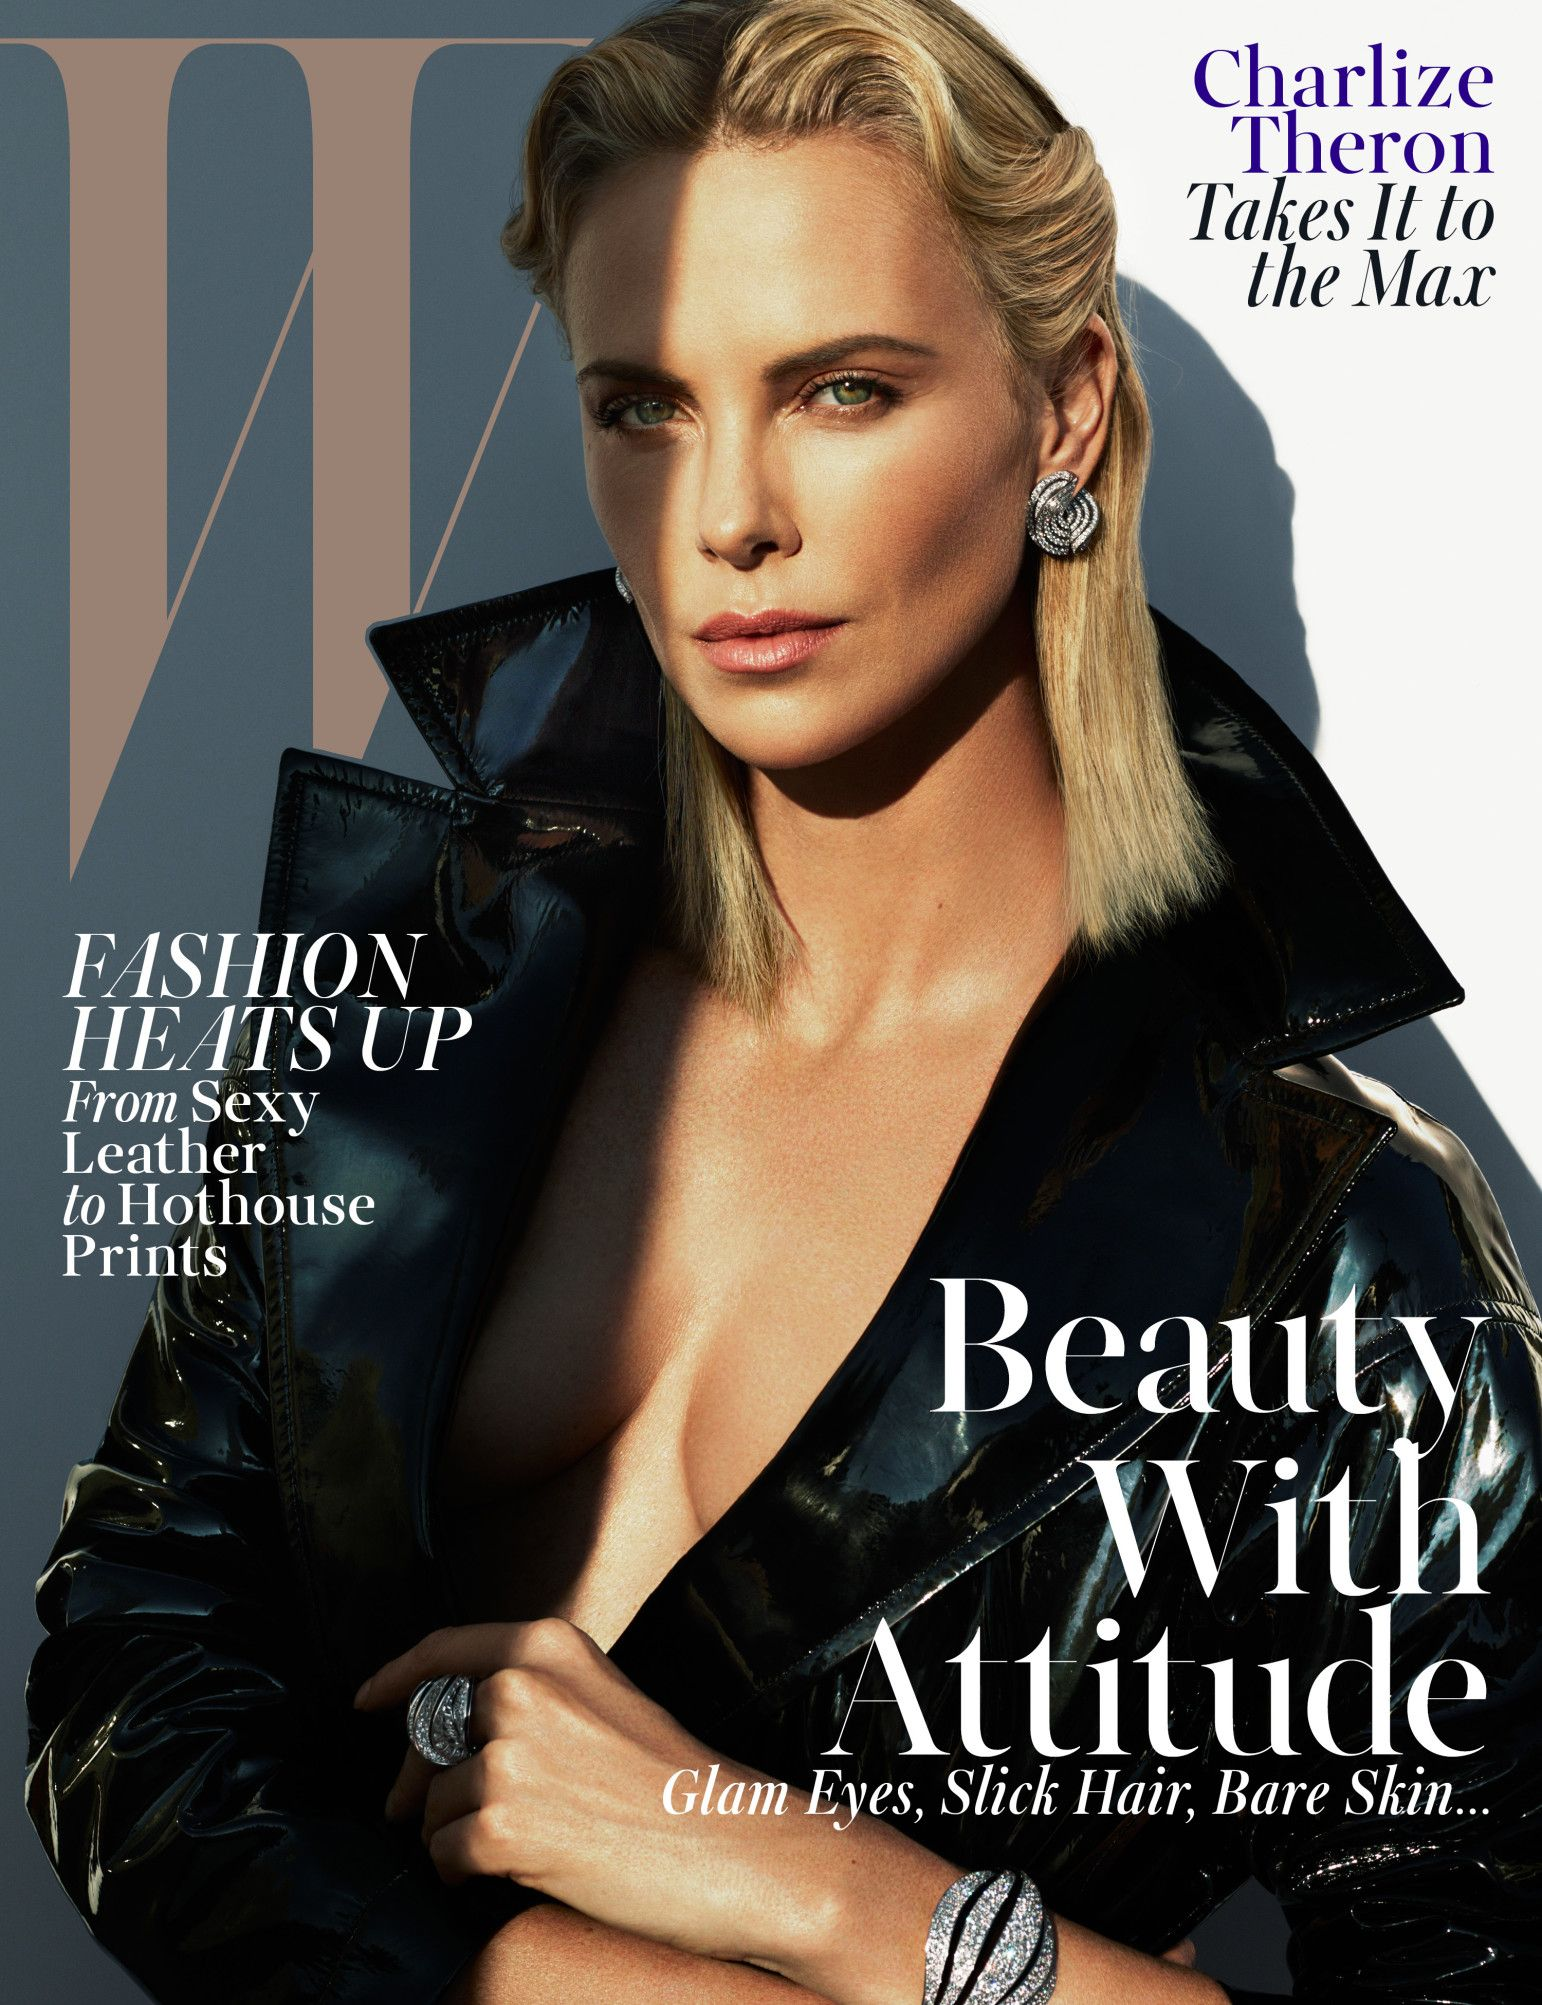 South African Hottie Charlize Theron Dazzle in W Magazine's Racy Photoshoot